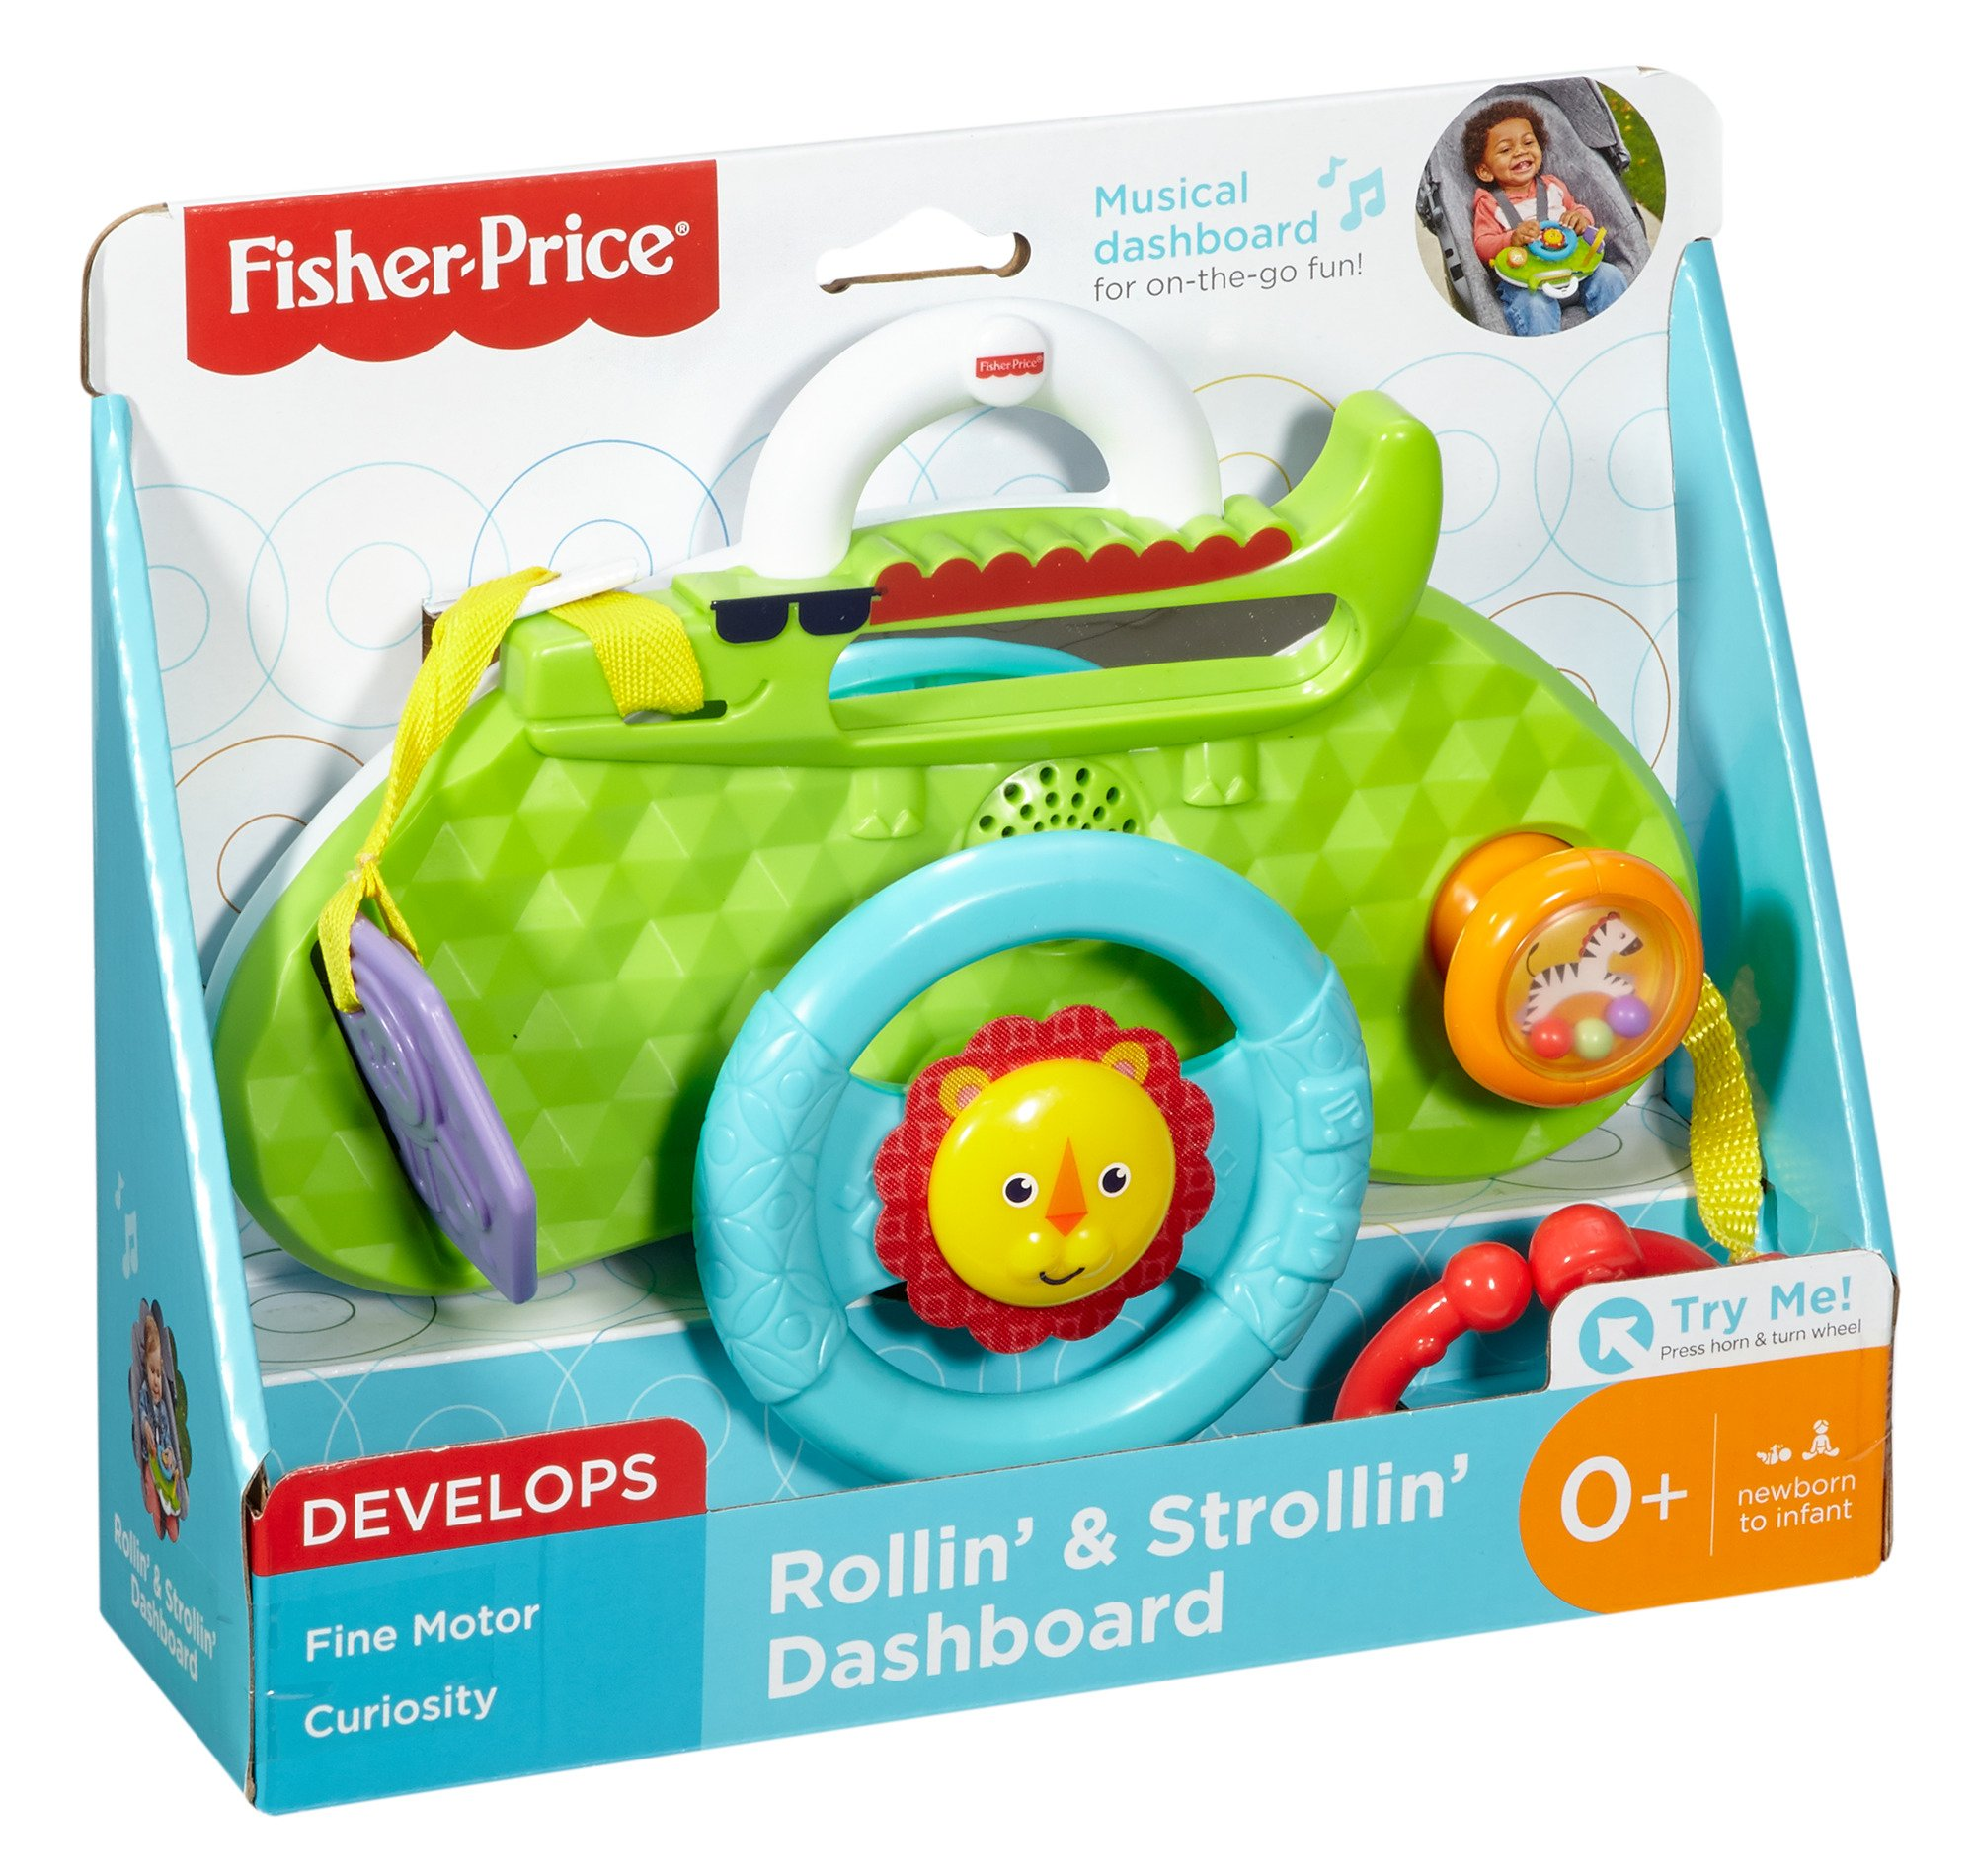 Fisher-Price Rolling and Strolling Dashboard, New-born Activity Toy with Music Sounds Fisher-Price  Attaches to stroller for playtime on the go  Turn the lion steering wheel to hear short songs  Push the lion's face for silly sound effects (Beep beep!) 7